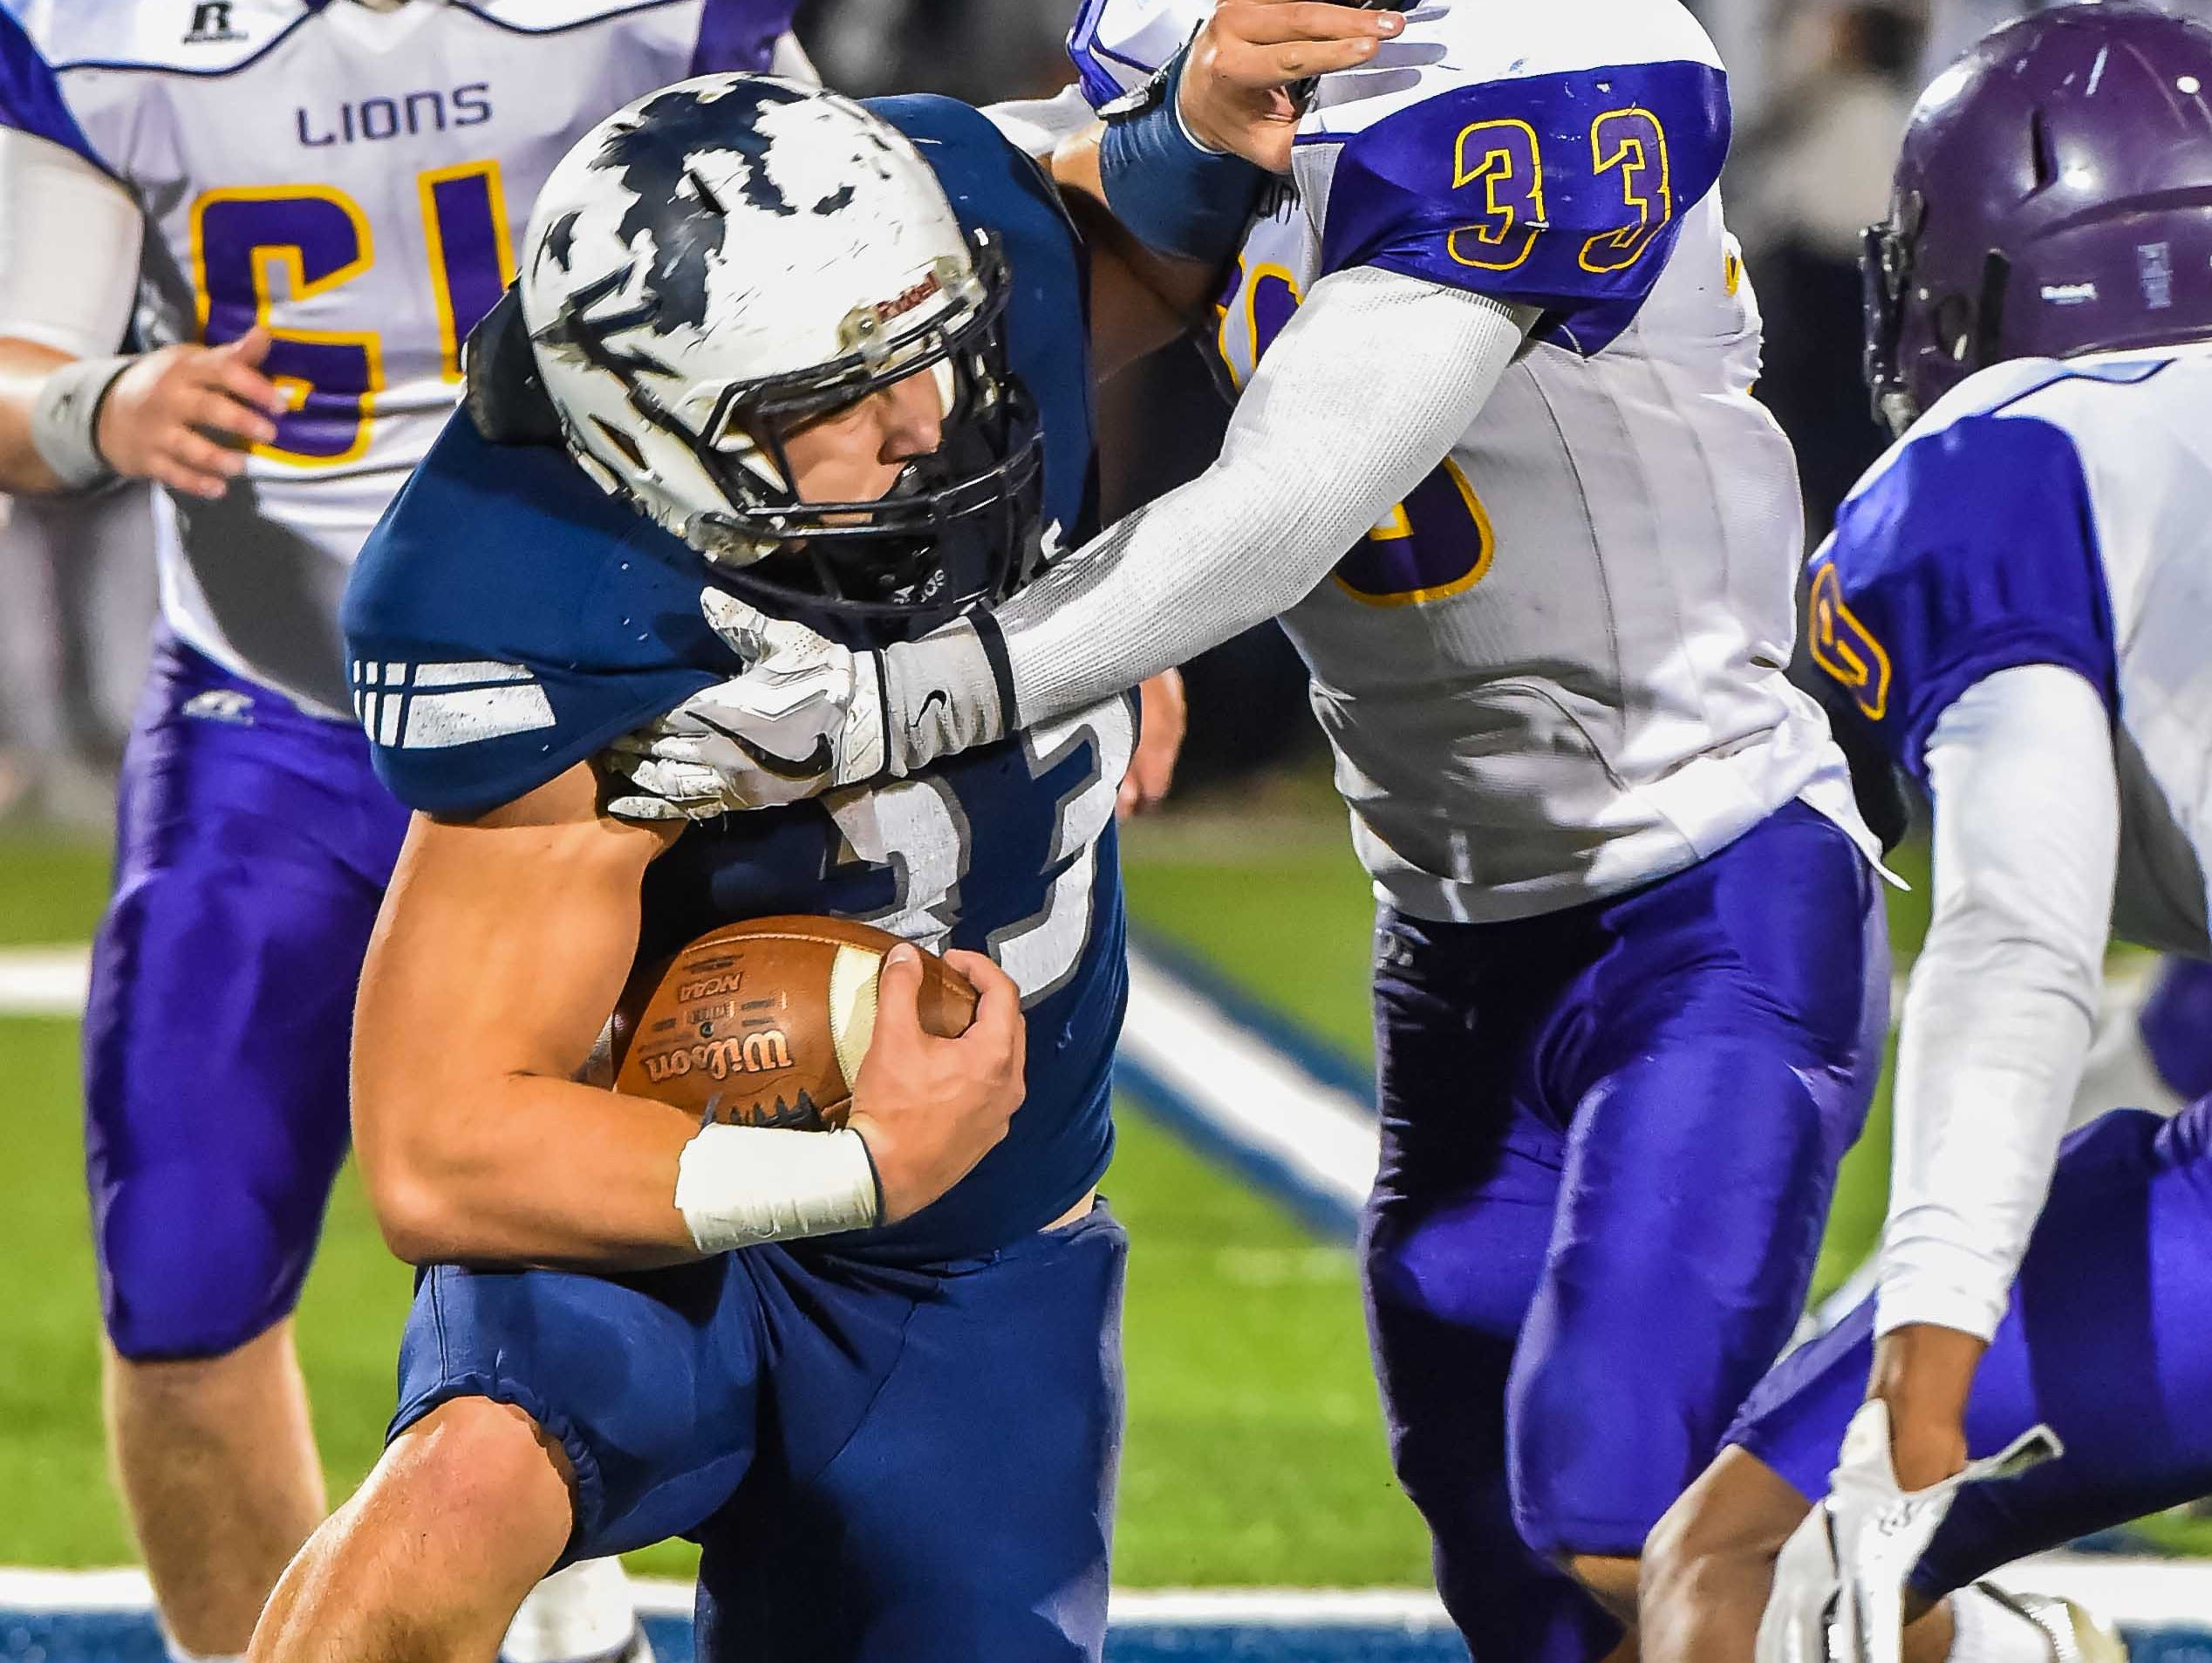 Tunica's Elijah Magee finds the going tough against Union Christian's Nick Evans (33) during the MAIS Class A Championship Football game held at Jackson Academy in Jackson, MS, Thursday November 15, 2018.(Bob Smith-For The Clarion Ledger)